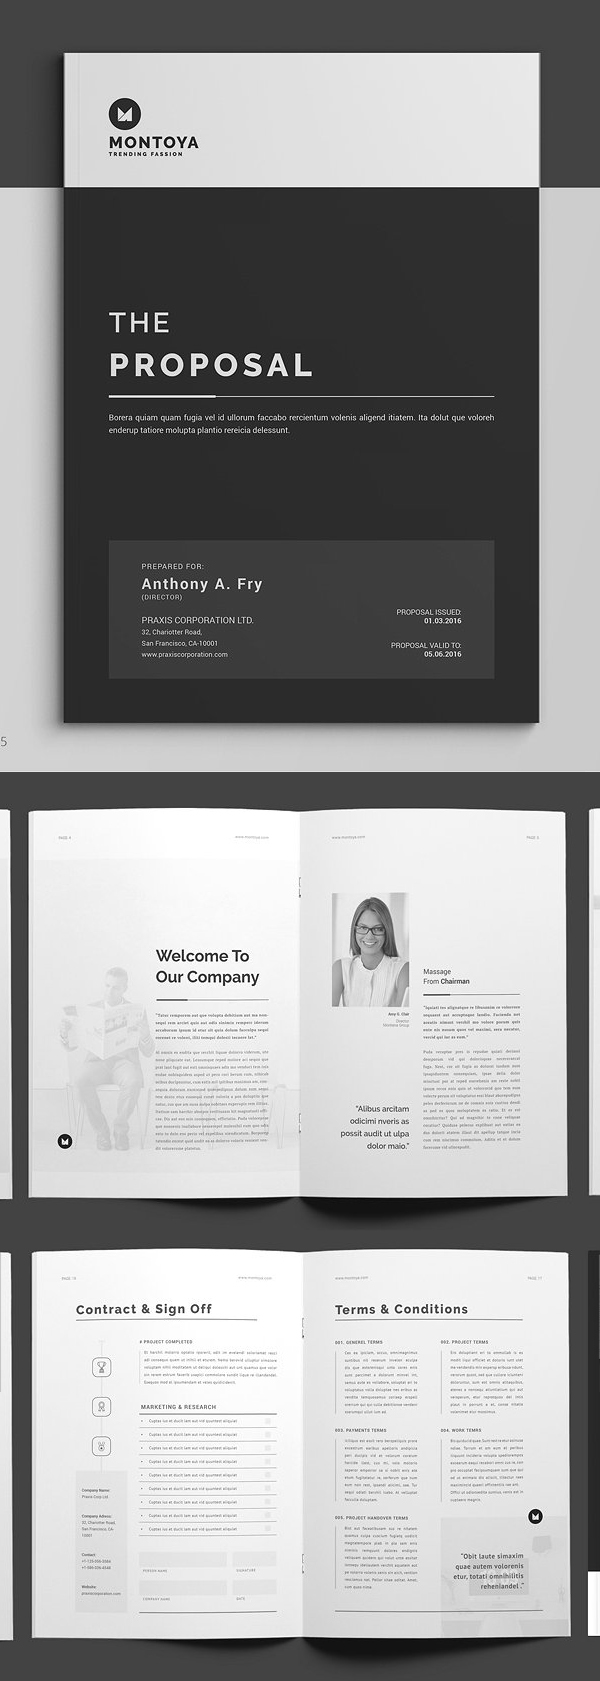 100 Professional Corporate Brochure Templates - 90